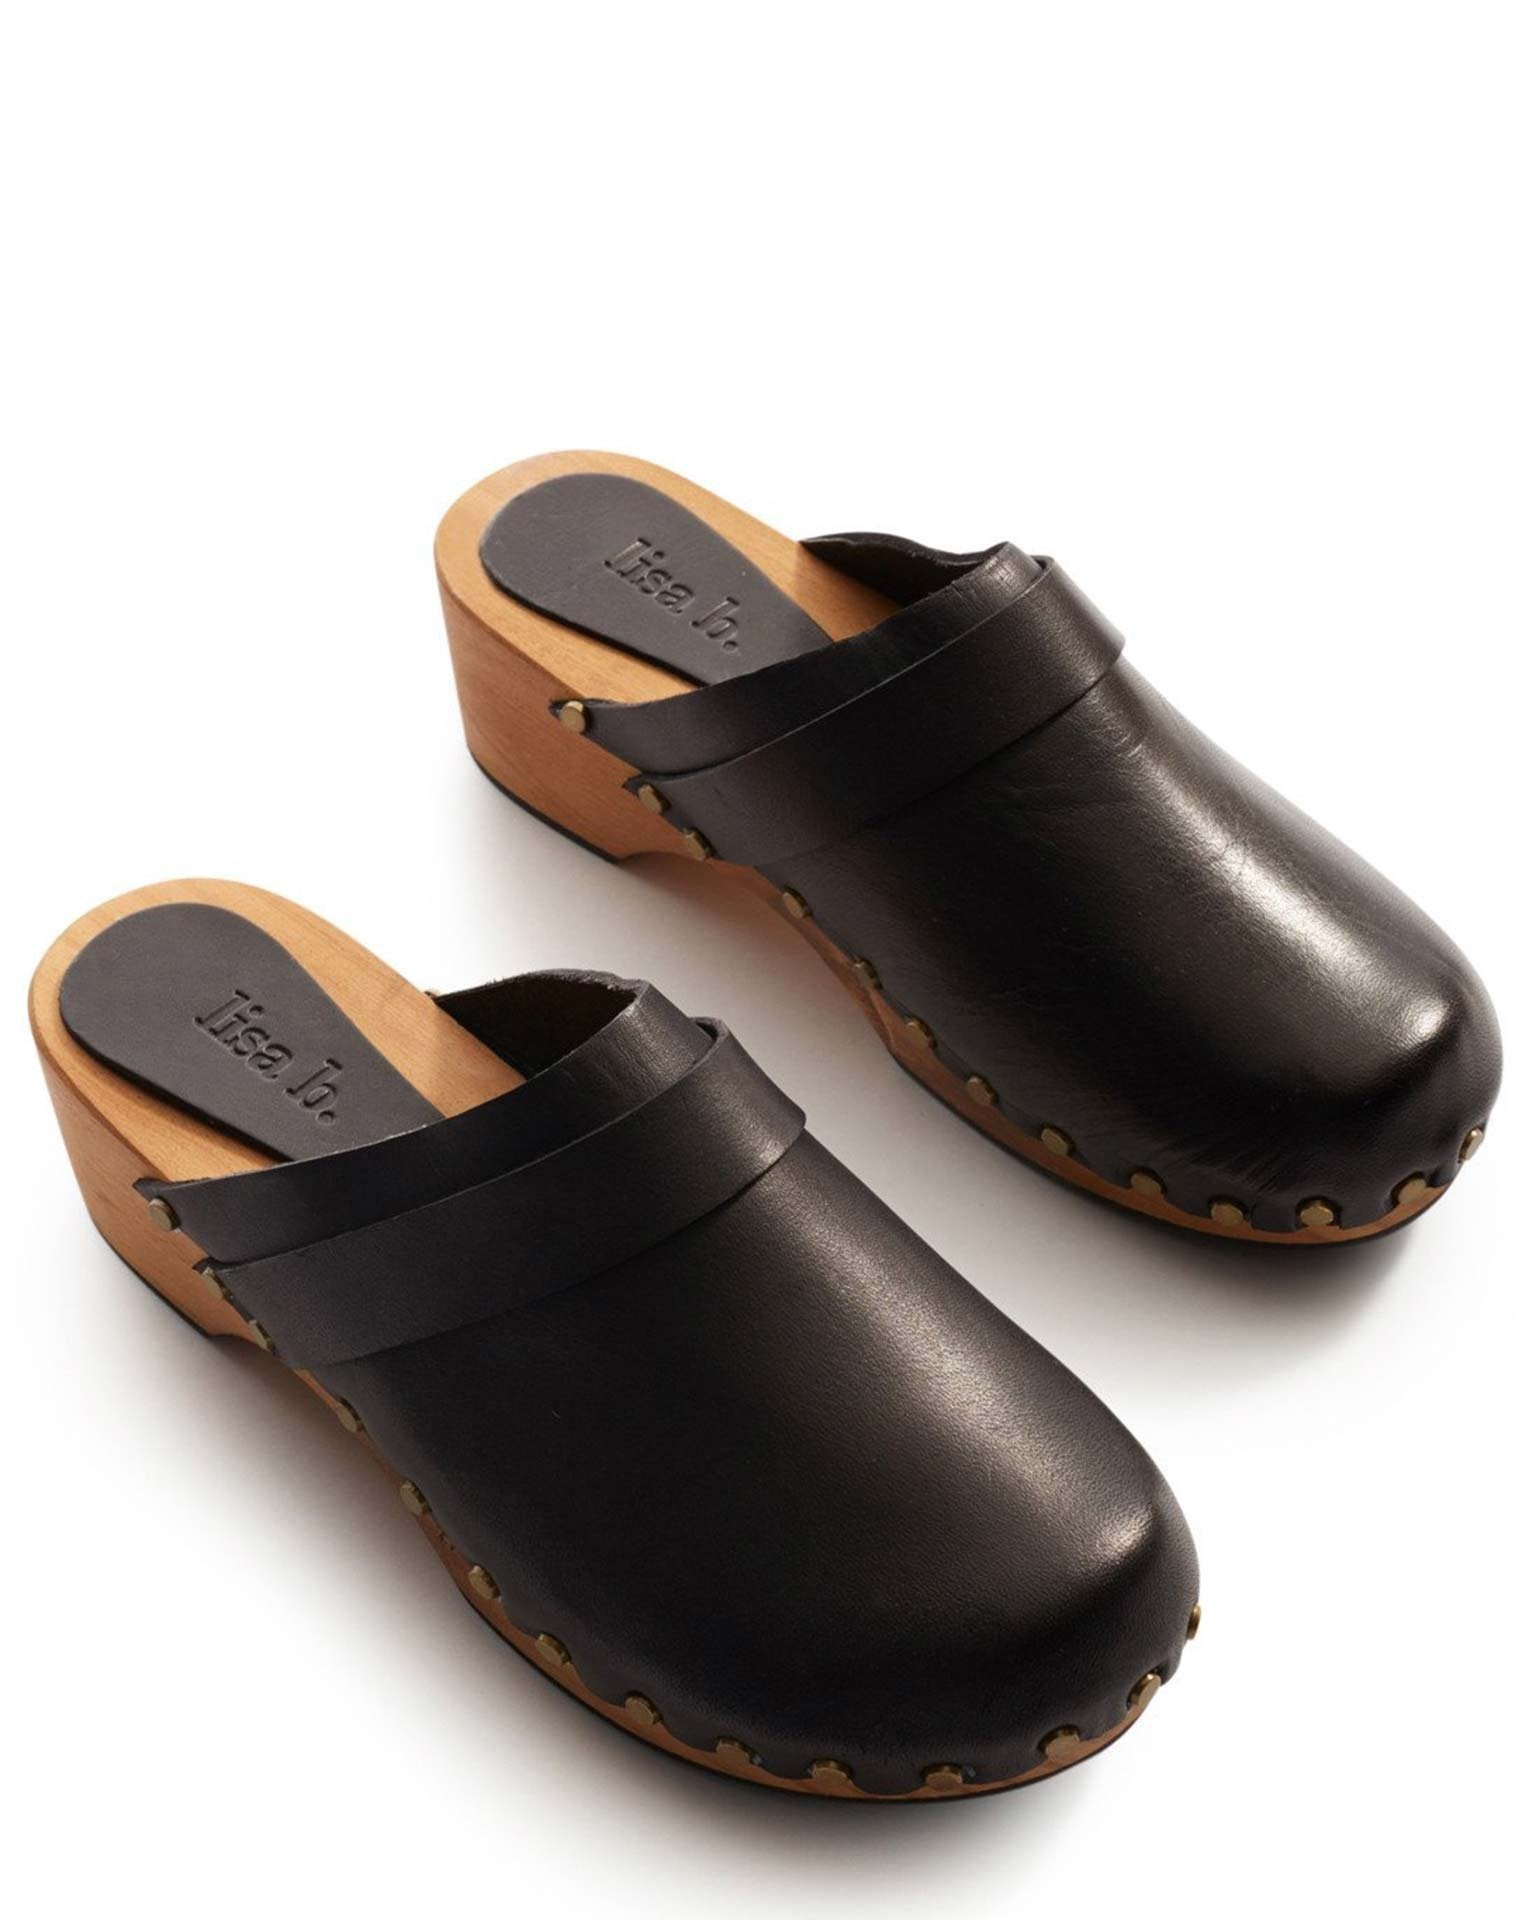 Lisa B. Shoes Black / 6 Low Heel Leather Clogs